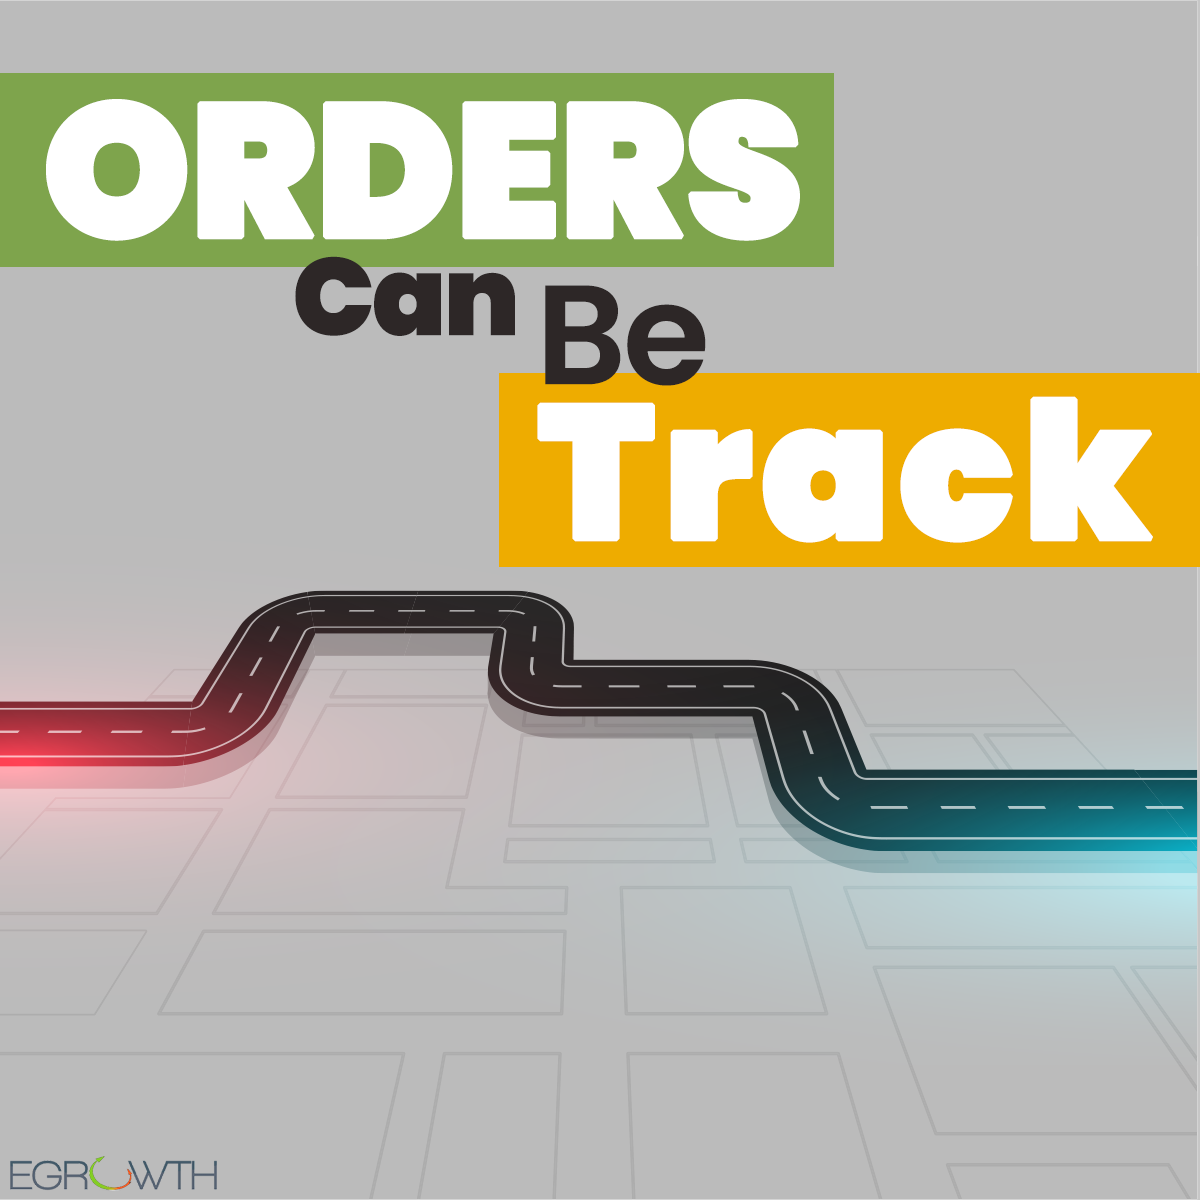 We've dedicated tracking system, you can track your order with this auspicious system. Just enter a tracking number, and get tracking results.  #ledlights #ledpanel #led #lamp #plantas #plant #plantbaseddiet #growlights #growshops #greenhouse #ground #hydroponicsystem #hydroponics #microfarm #amazon #amazonprime #Ebay #fastshipping #suculentas #suculents #spectrum #fullspectrum #fullspectrumcbd #egrowthinternational #interestfree #4easypayments #cultivation #cultivo #dietavegana #cliplamp